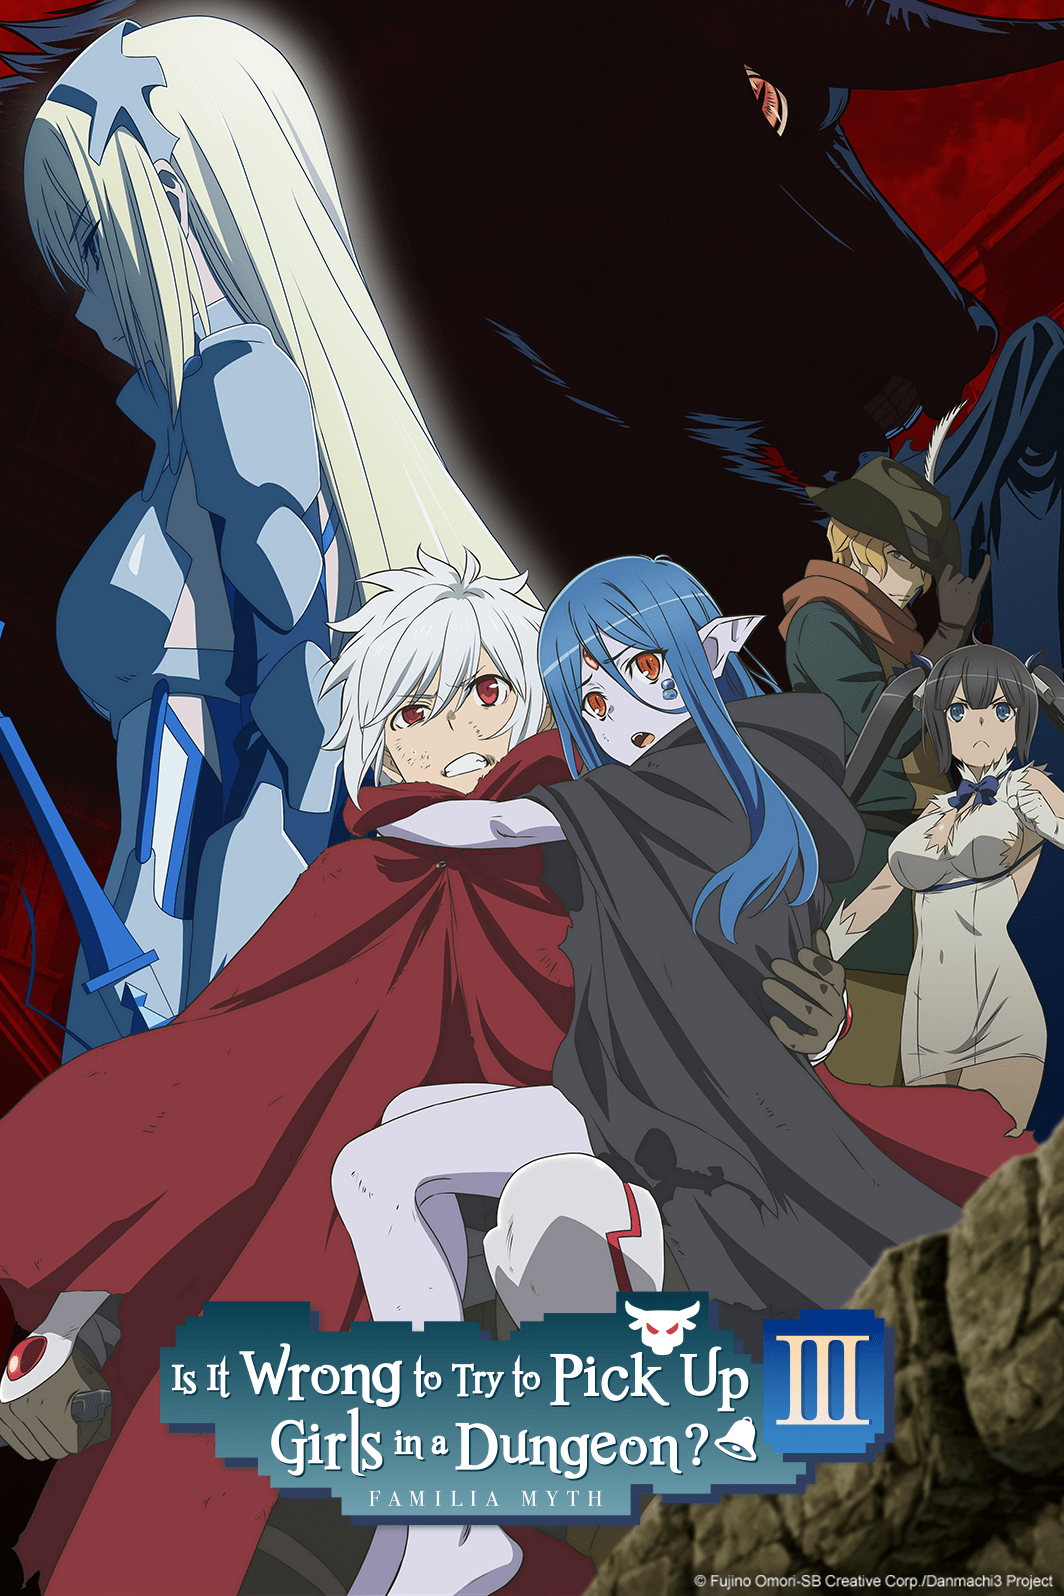 Is It Wrong to Try to Pick Up Girls in a Dungeon? III